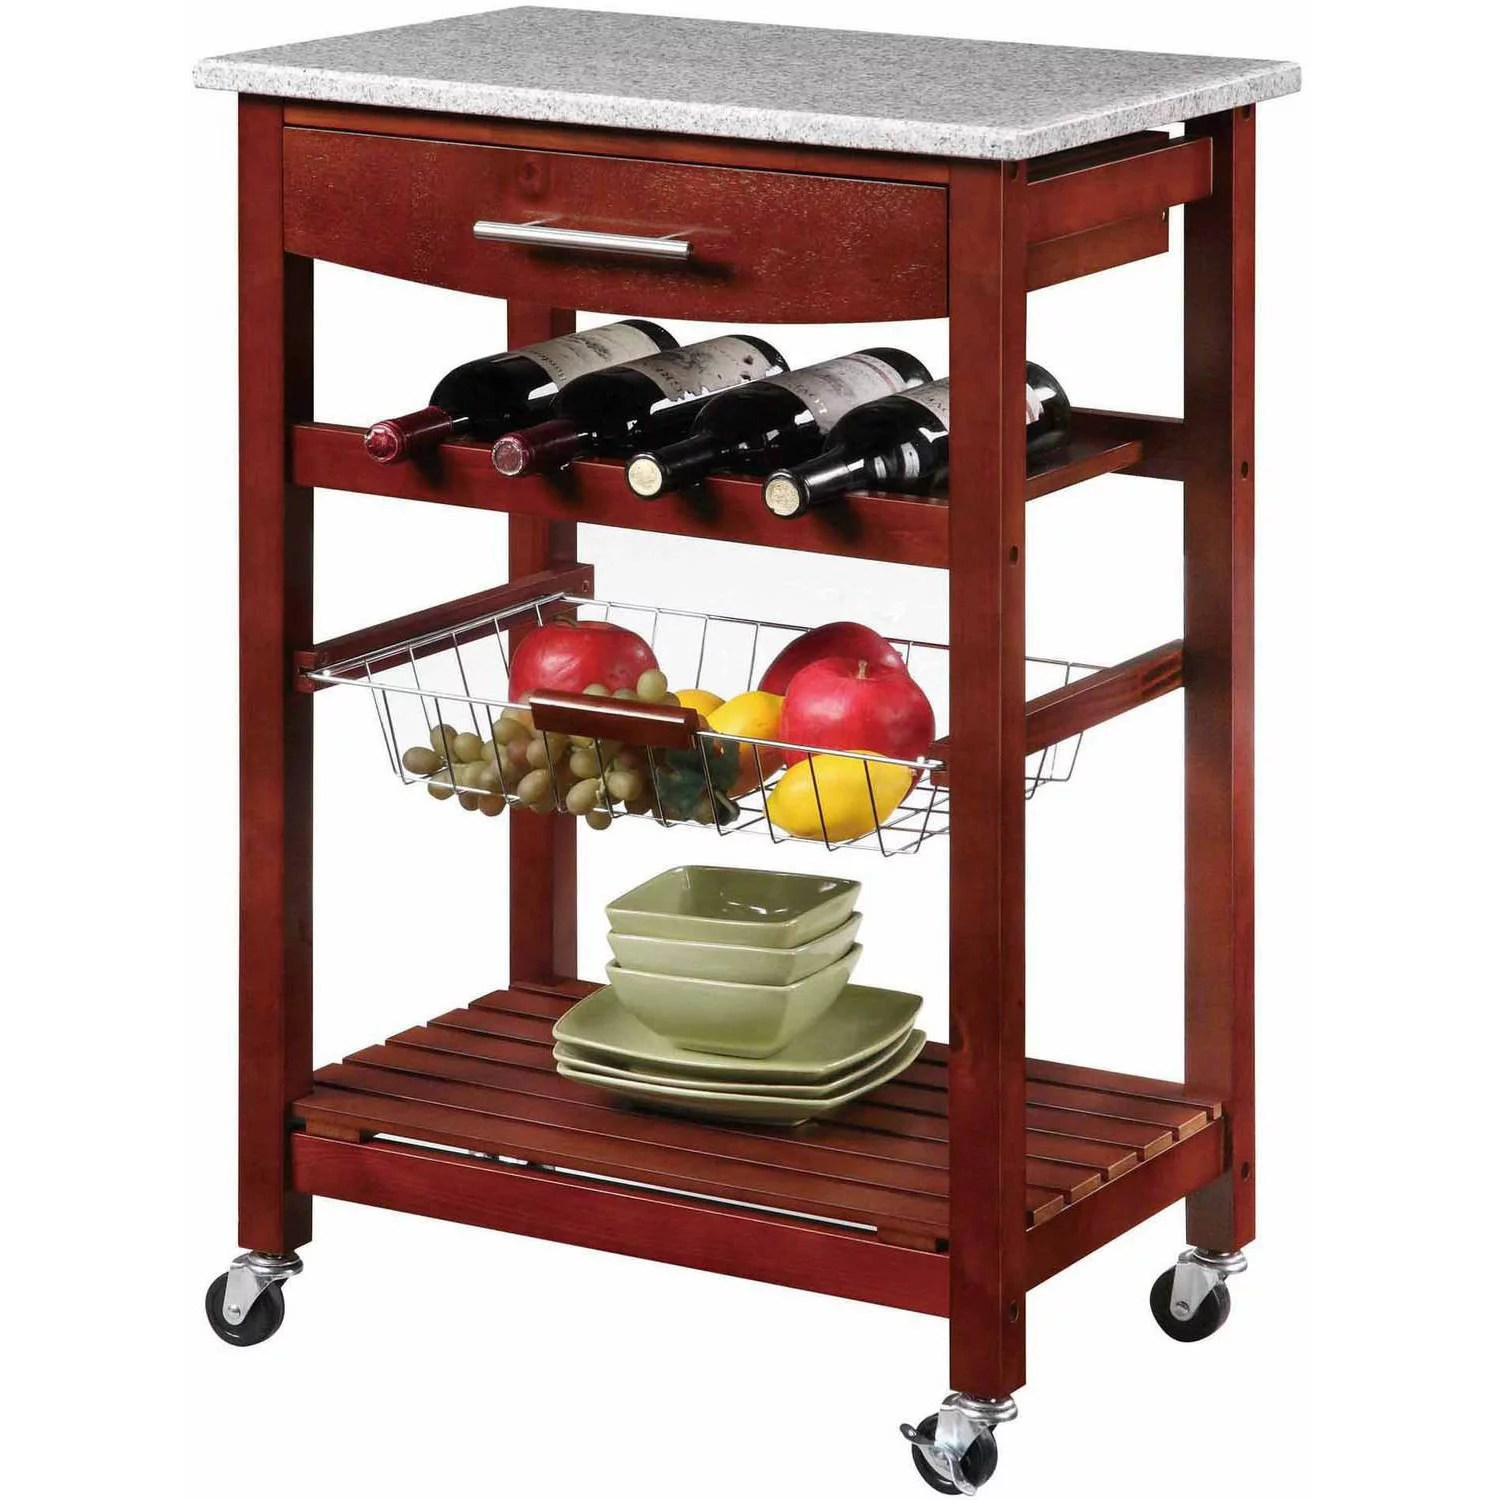 granite top kitchen cart honest dog food reviews linon island with 33 8 inches tall multiple colors walmart com